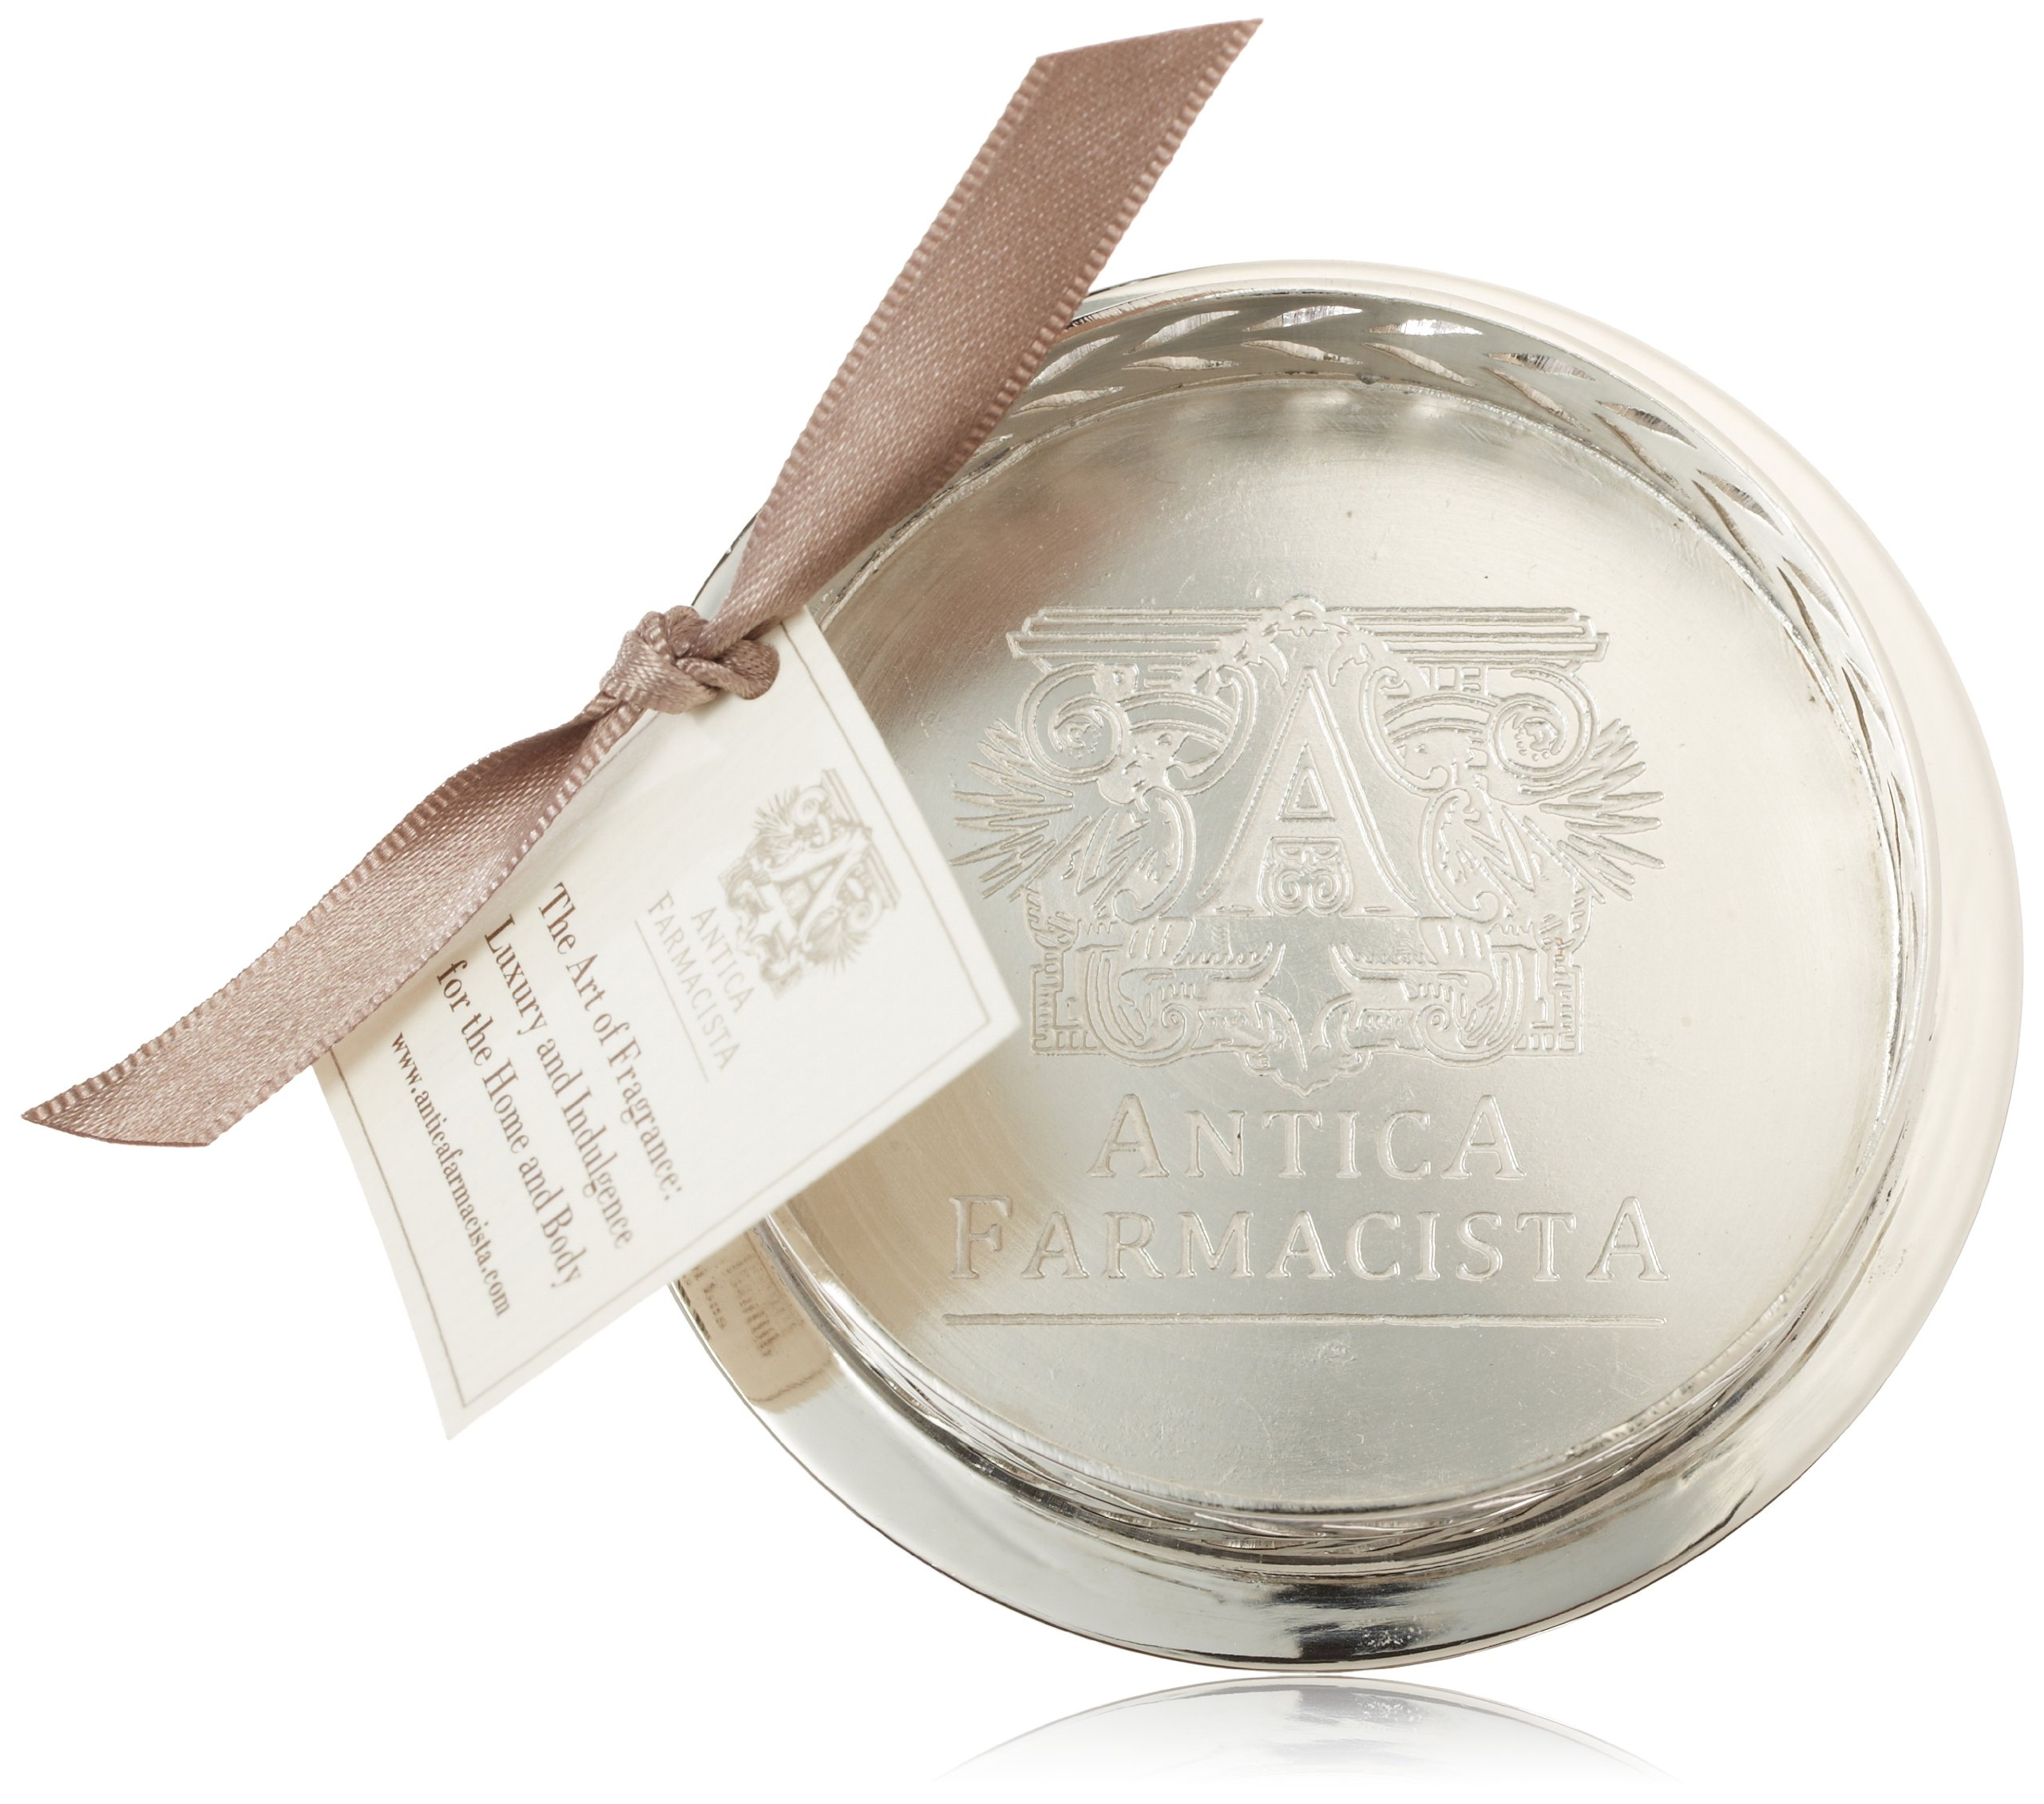 Antica Farmacista Nickel Decorative Tray for 250 ml Diffuser